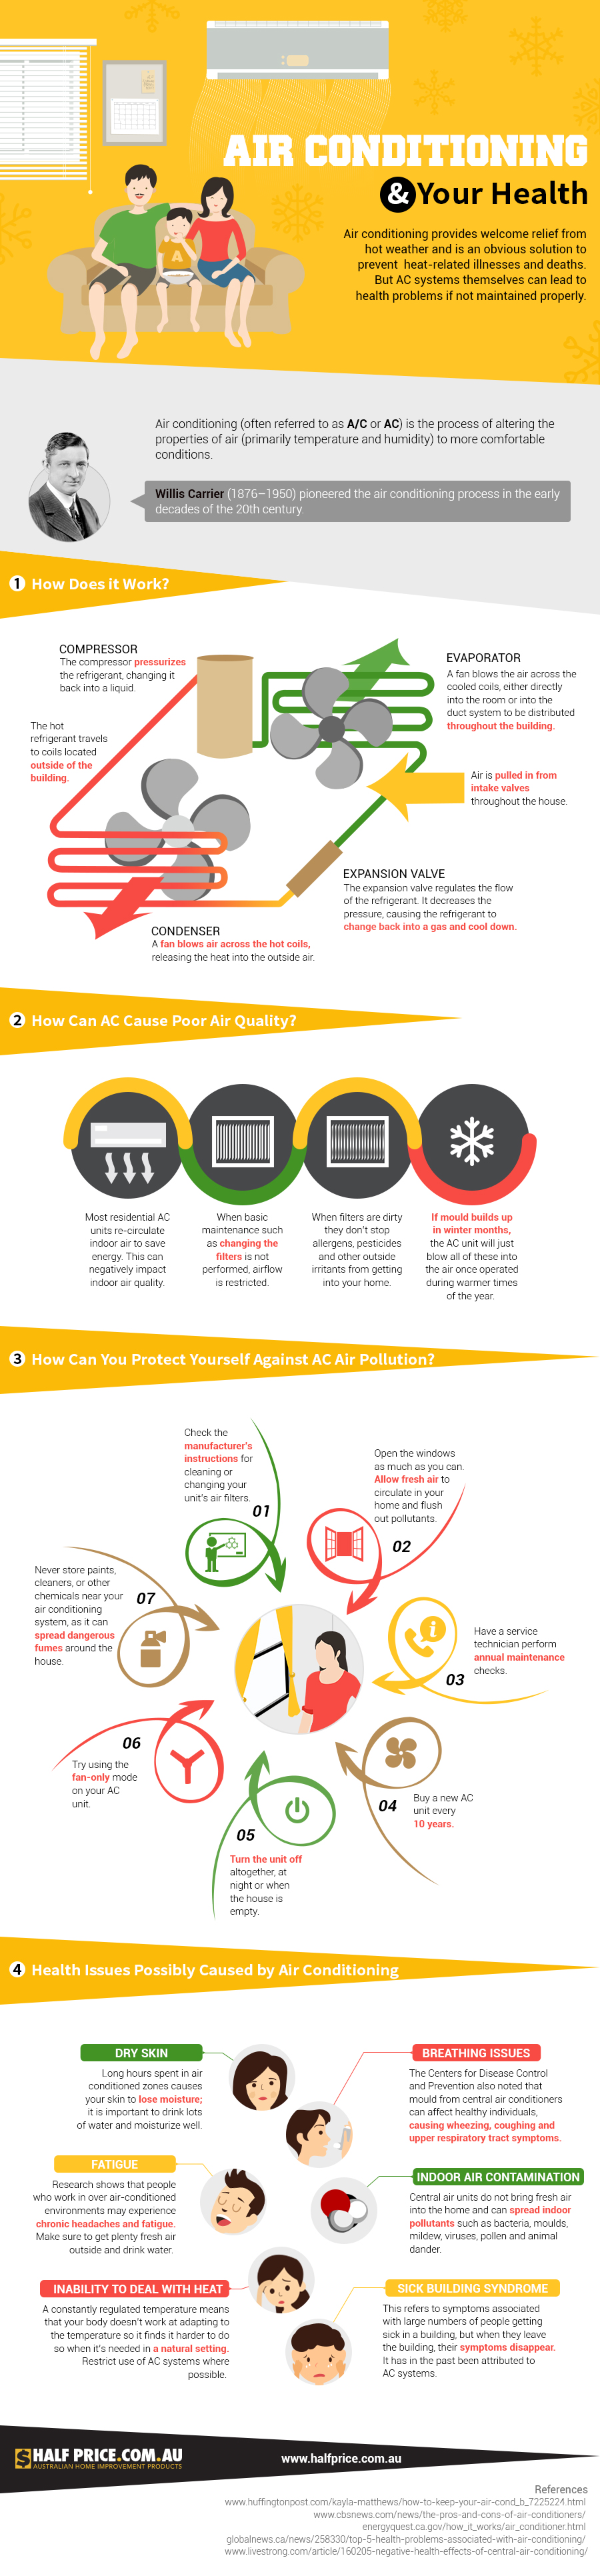 Air Conditioner and health Infographic